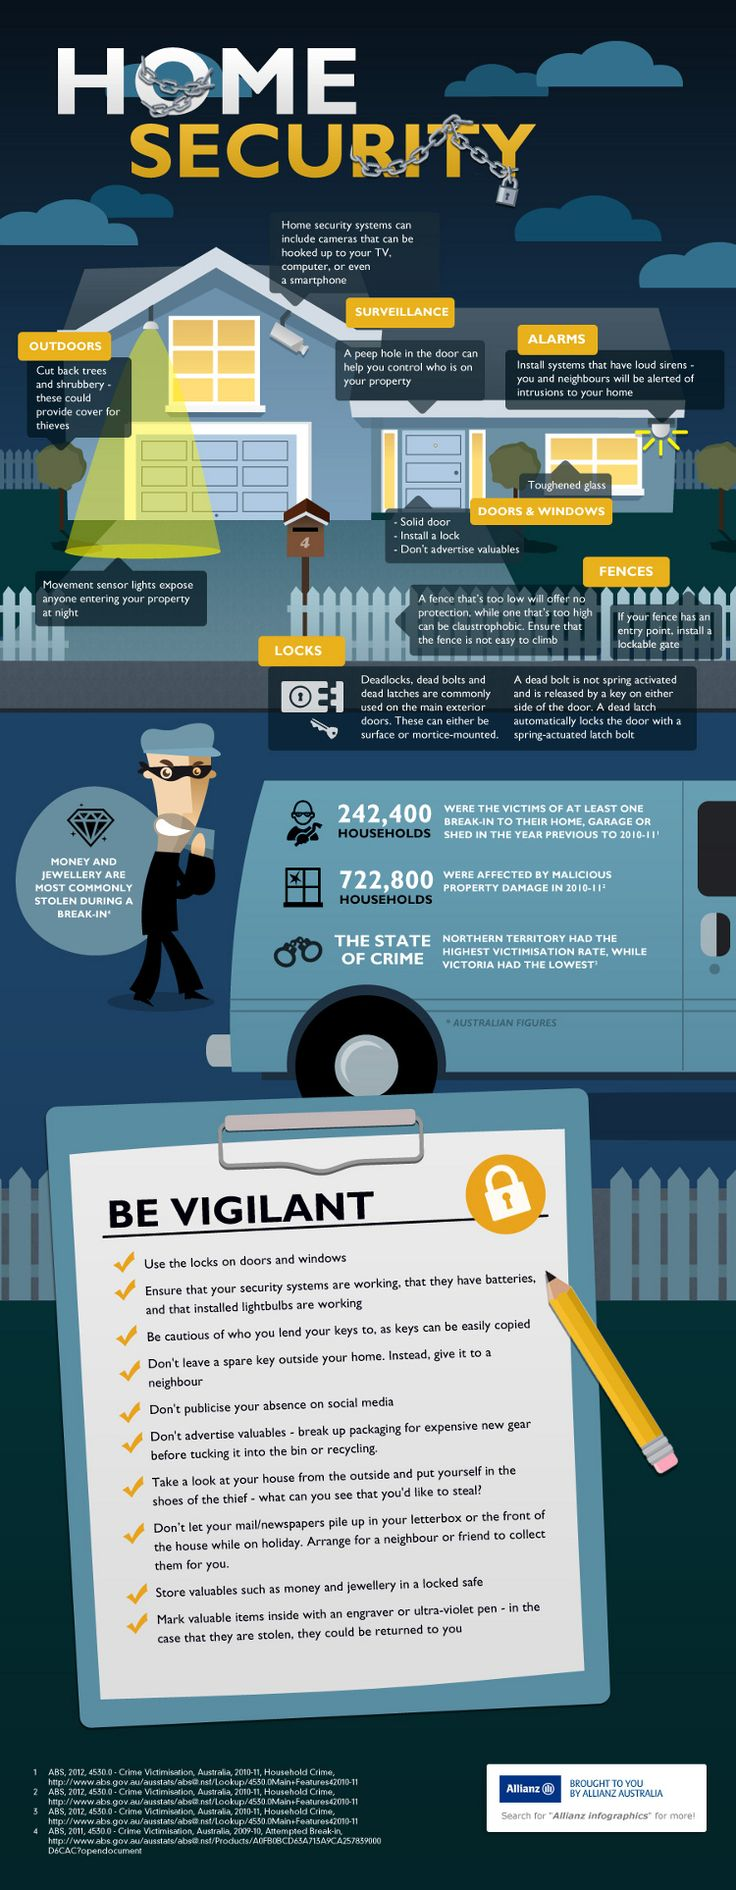 491 best Security images on Pinterest | Technology, Architecture and ...